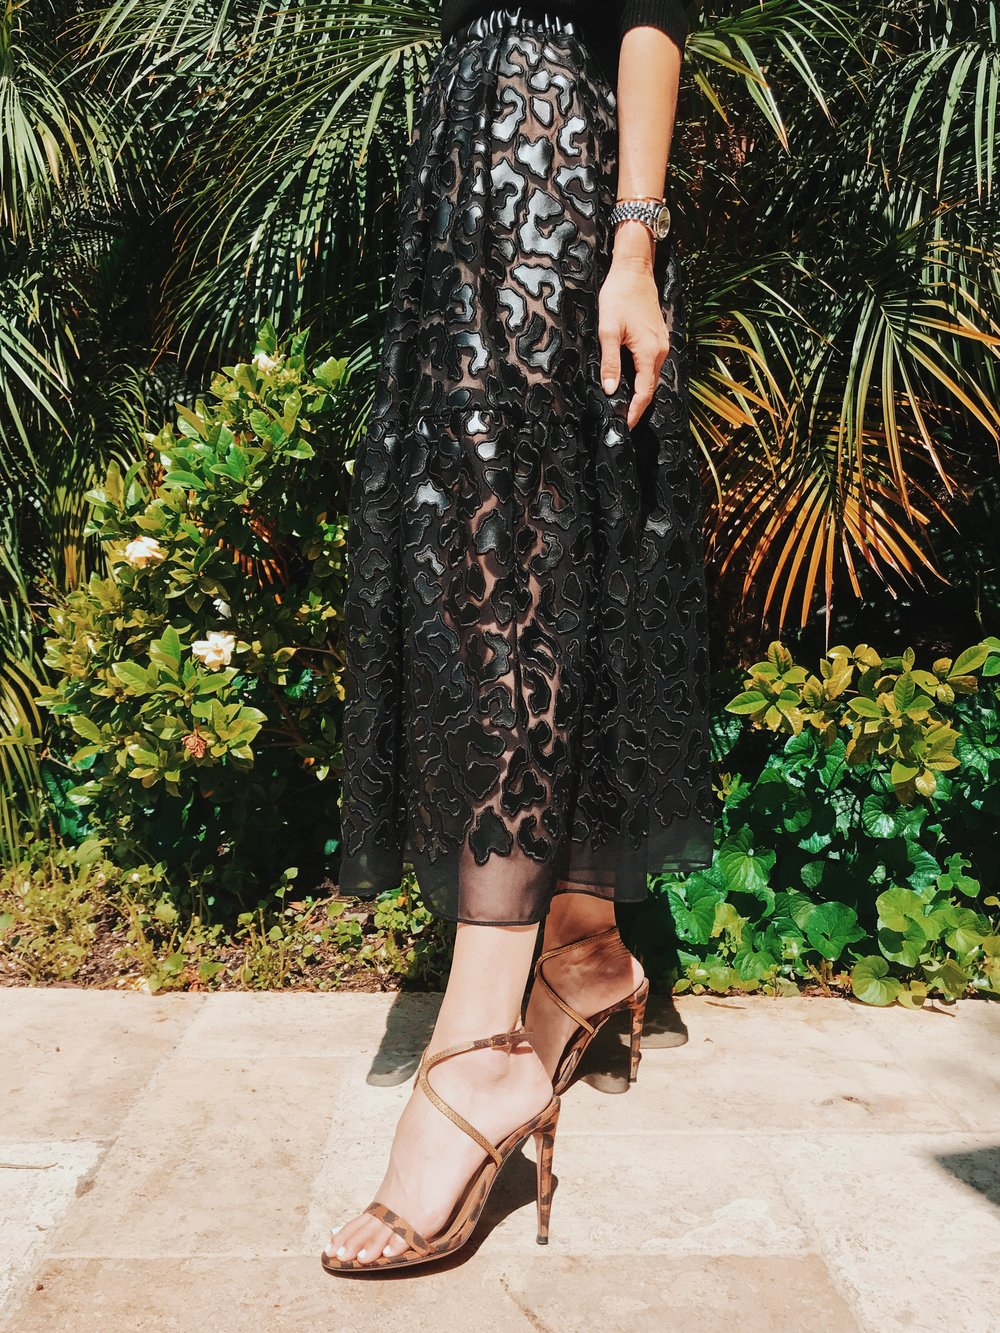 Skirt: Stella Mccartney | shoes: Aquazzura | Photo: Drew Evans